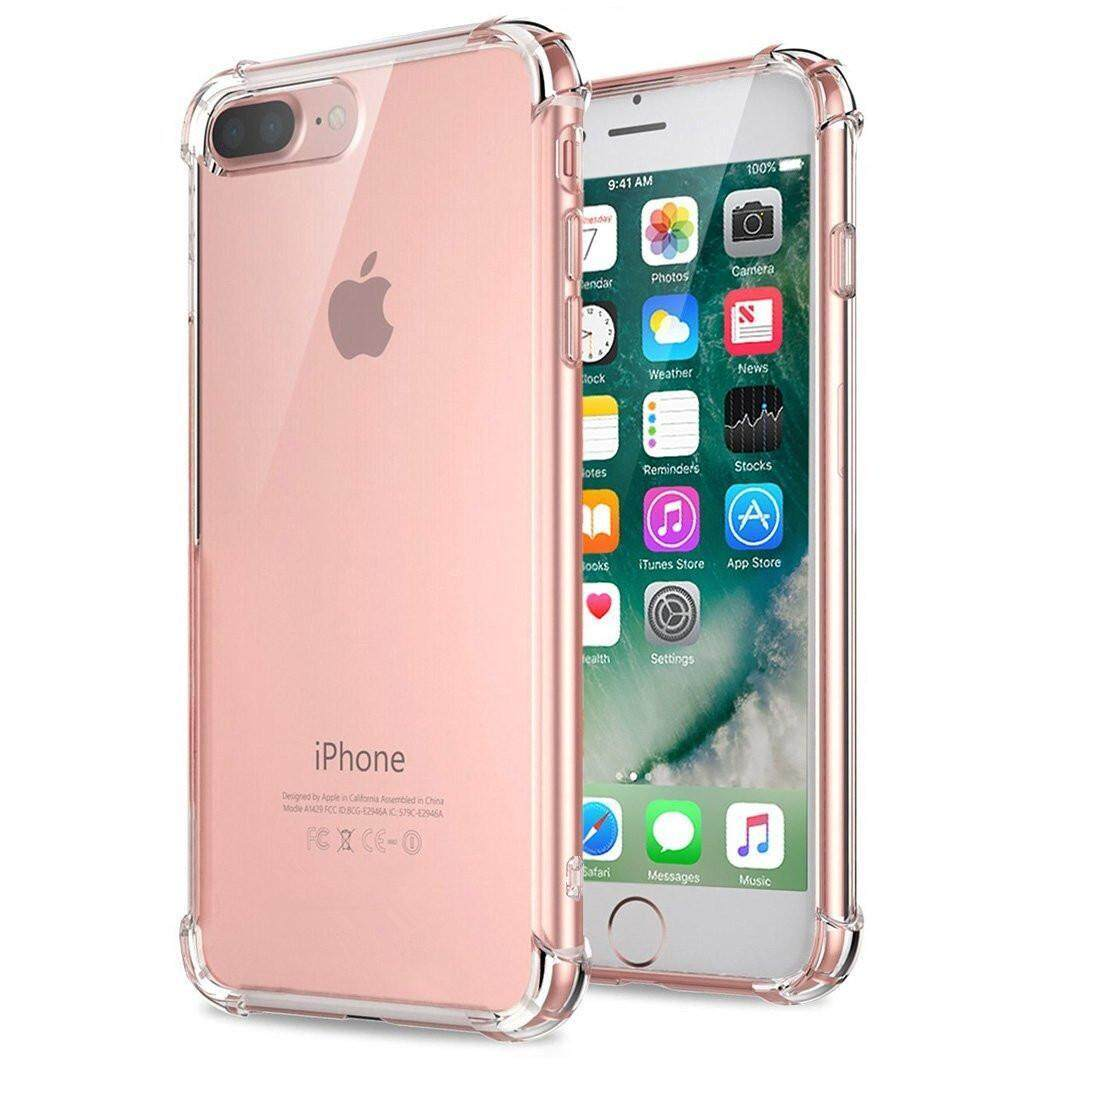 Iphone 7 Plus Case, Iphone 8 Plus Case, Silicone Clear Shockproof Case Cover Transparent Soft Tpu Bumper Phone Casing By Linkee.